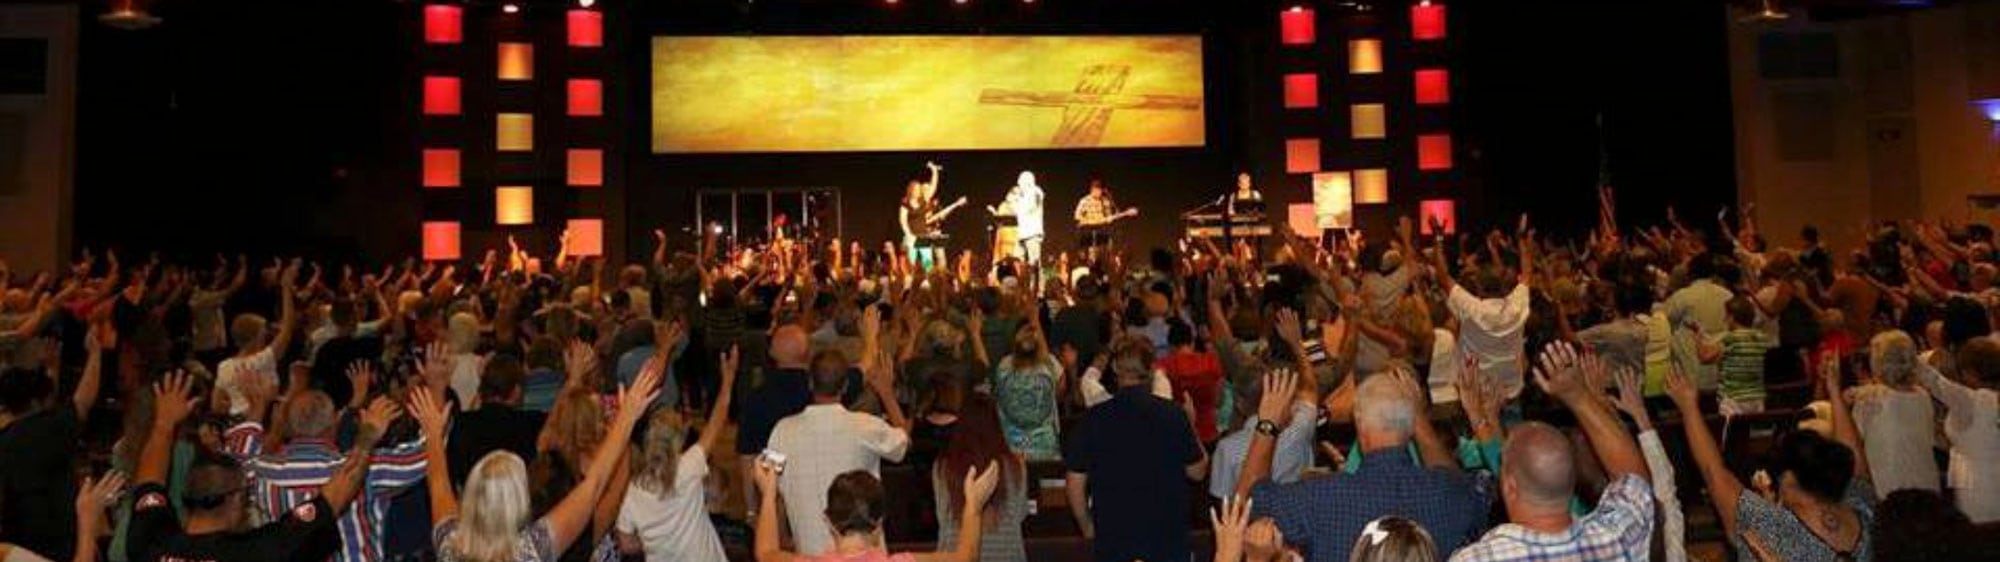 DP City Church C3